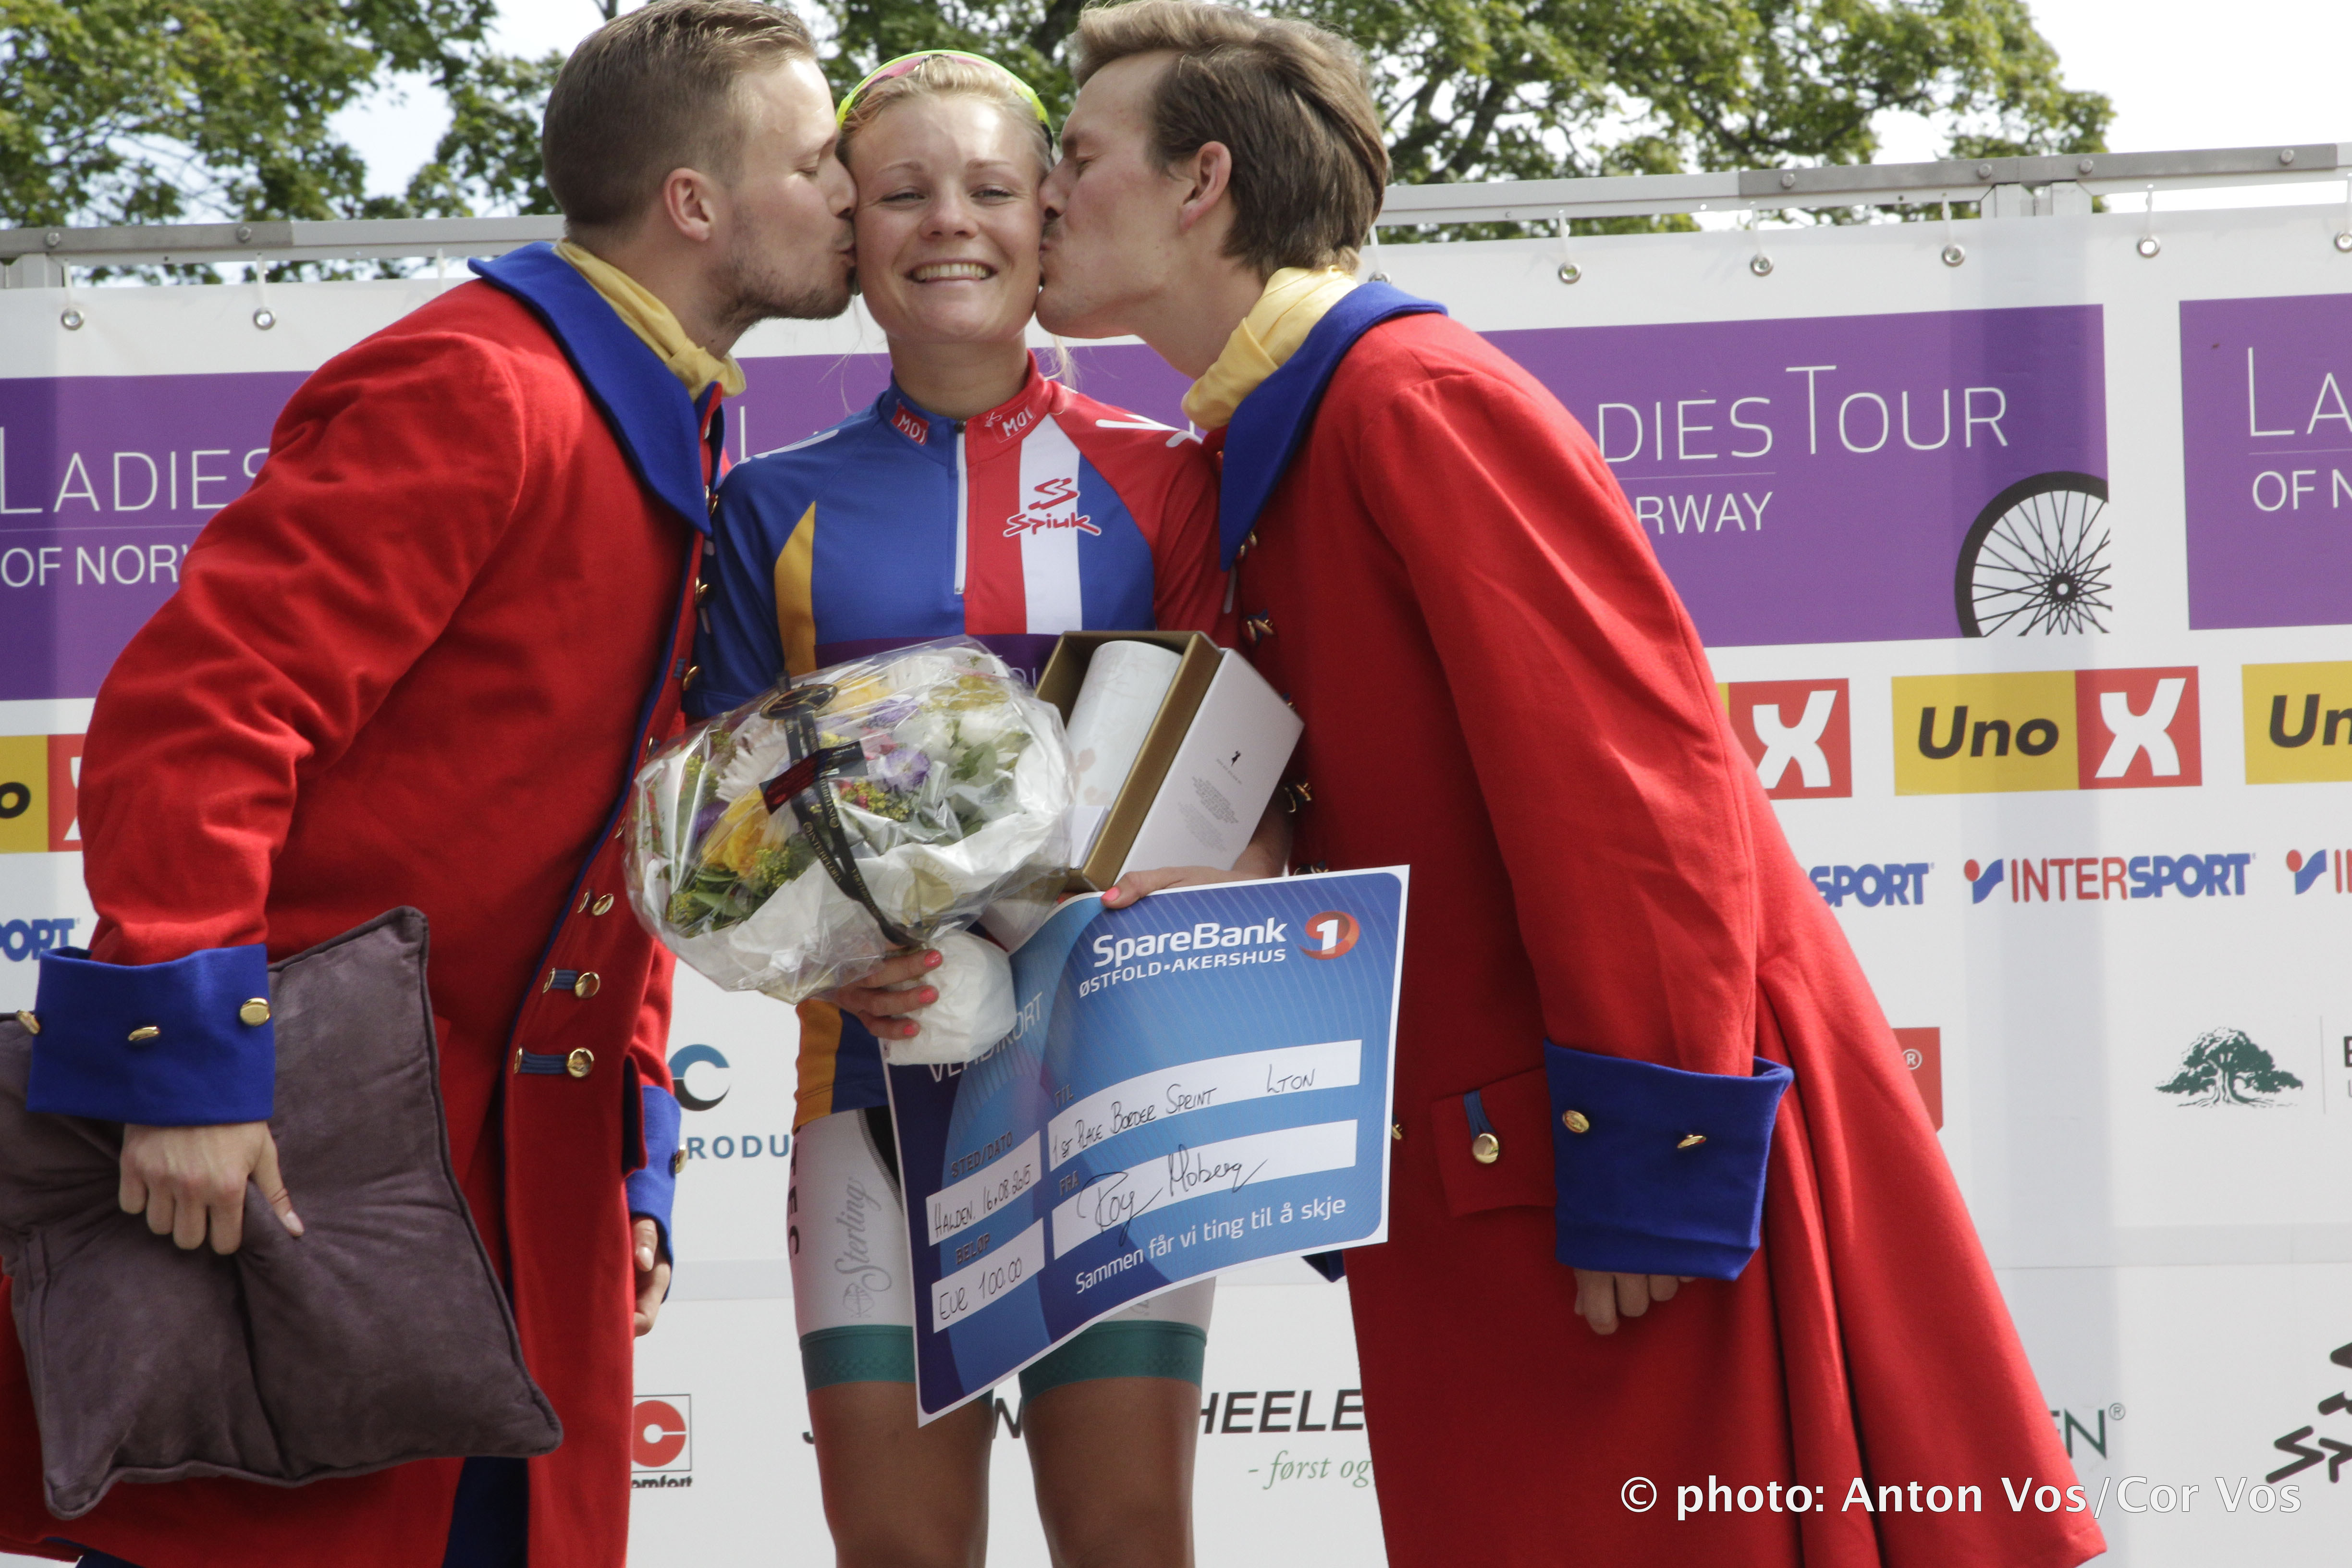 Halden - Norway - wielrennen - cycling - radsport - cyclisme -  Moberg Emilie of Hitec Products  pictured during  stage - 2 of the Ladiestour of Norway 2015 - photo Anton Vos/Cor Vos © 2015